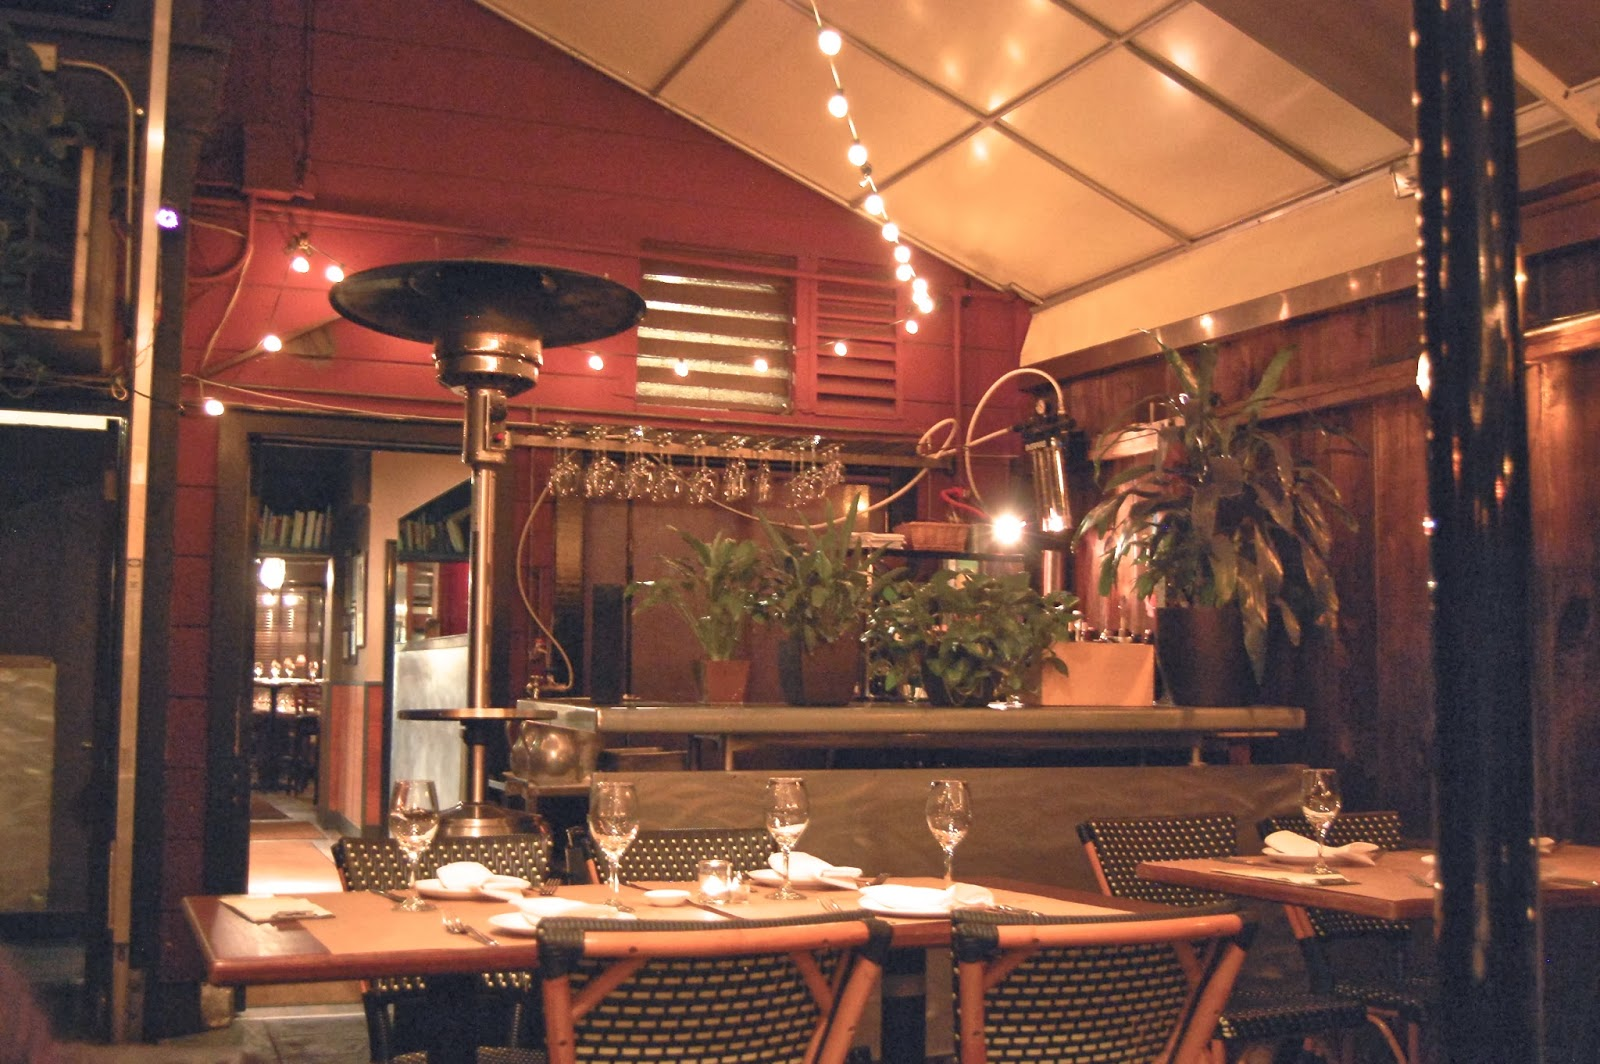 Isa is one of the many celebrated restaurants on Steiner Street between Chestnut and Lombard.